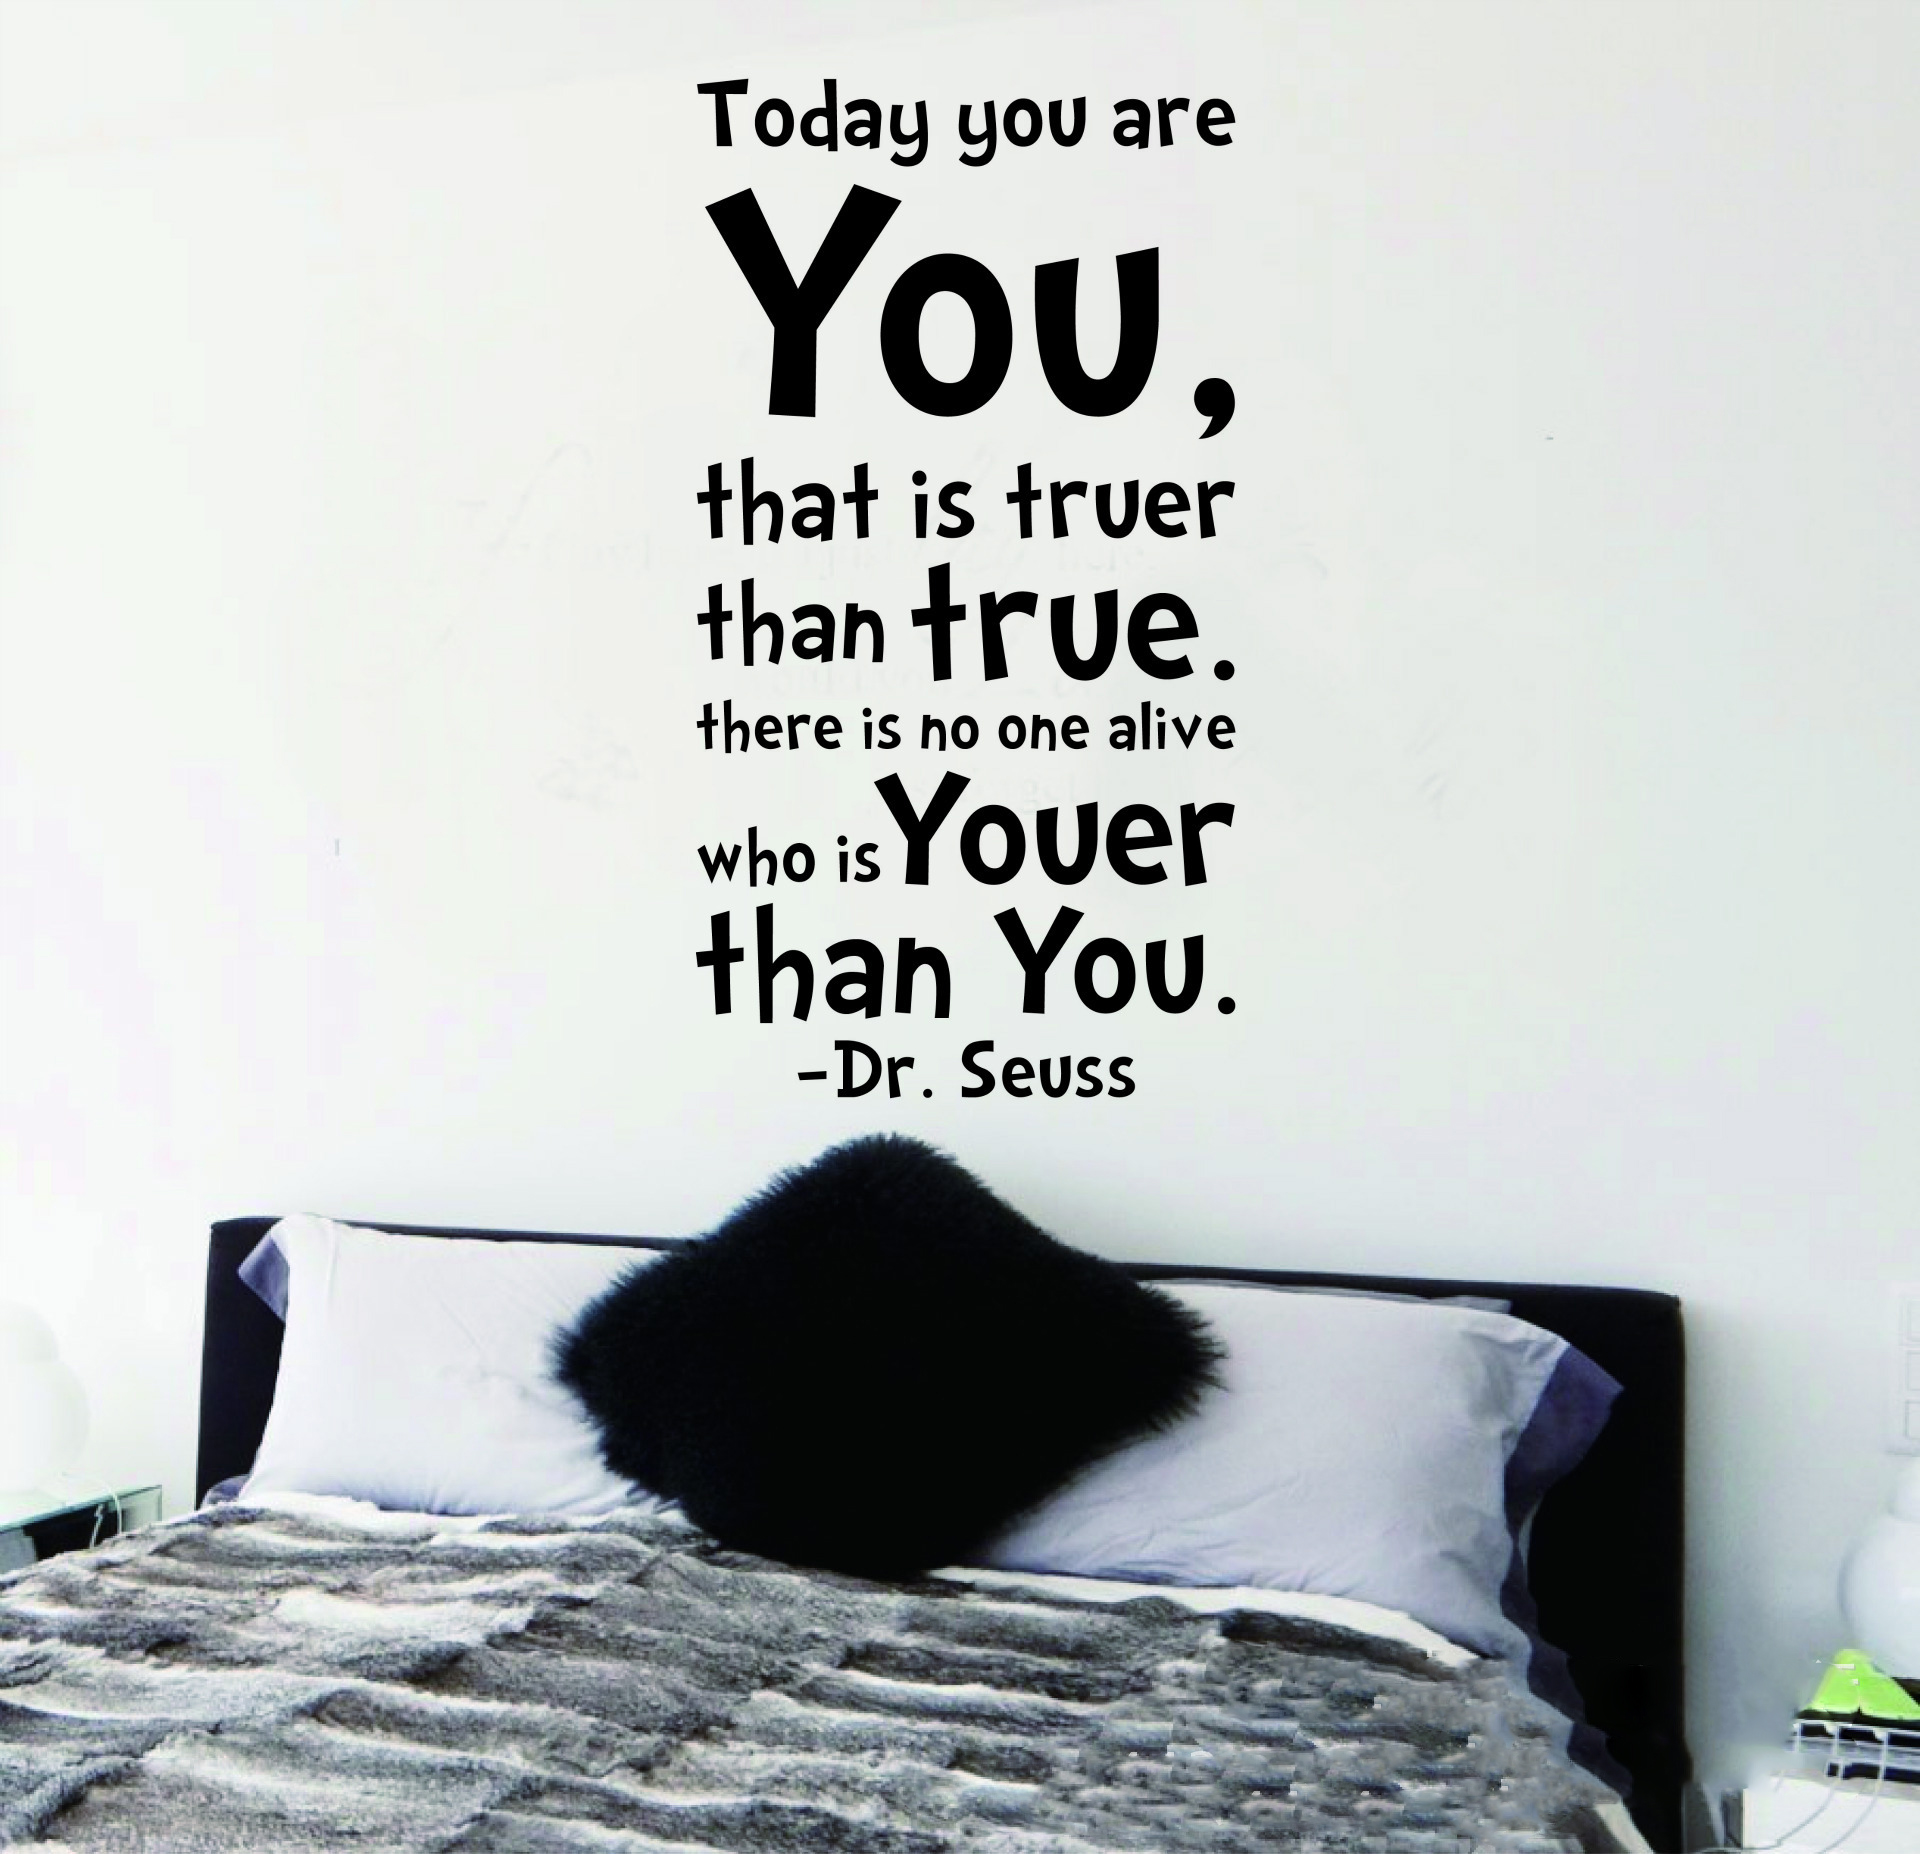 dr seuss inspiration quote today you are you letters wall sticker features high quality brand new100 material nontoxic pvc which is removable without residue remaining on the surface non toxic environmental protection